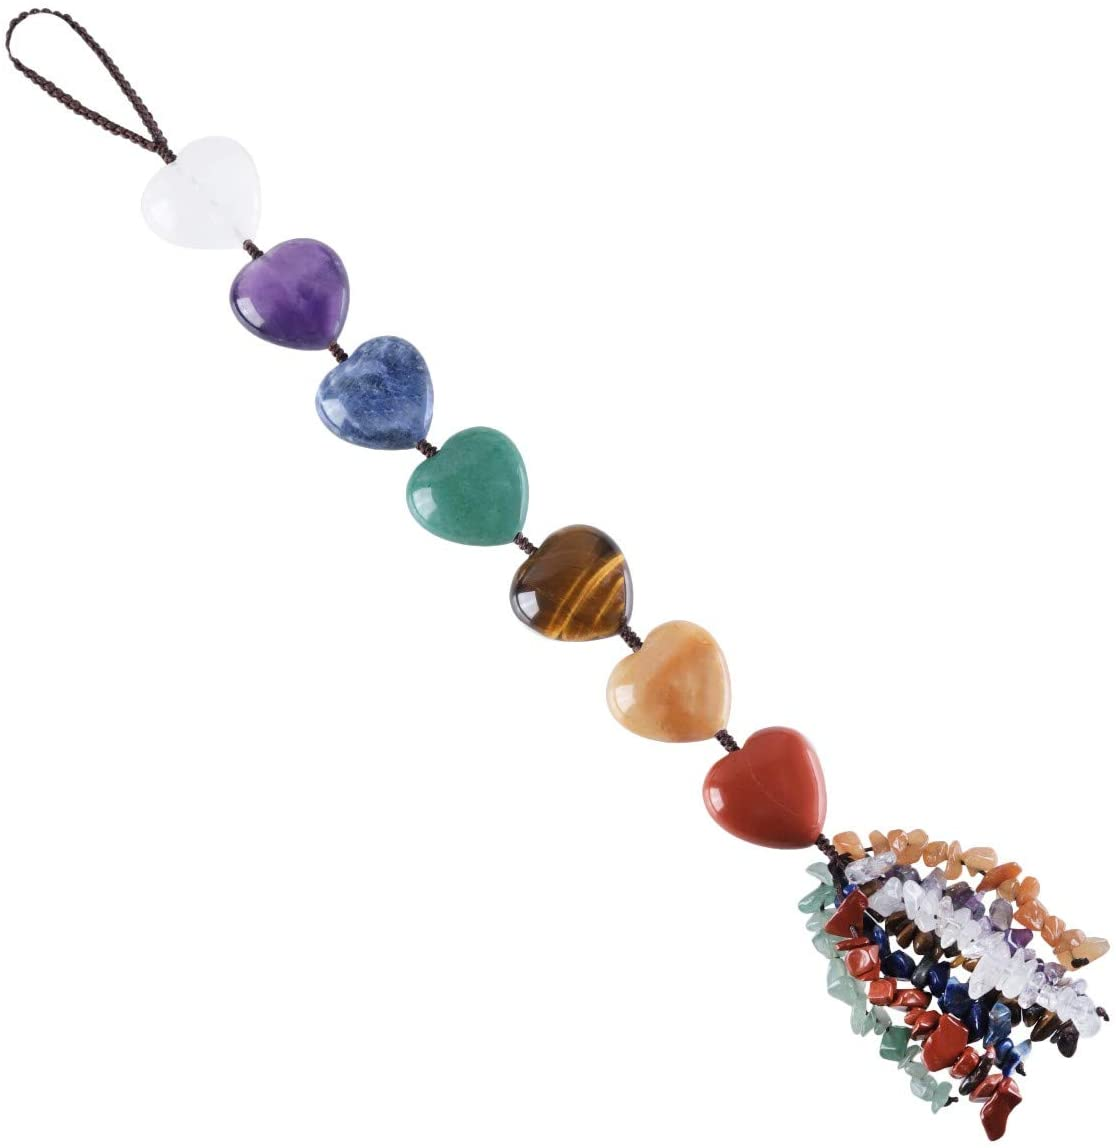 Nupuyai 7 Chakra Hanging Ornament Crystal Set for Home Indoor Decorations, Heart Stone Chips Tassel Feng Shui Wall Decor for Reiki Good Luck Yoga Meditation